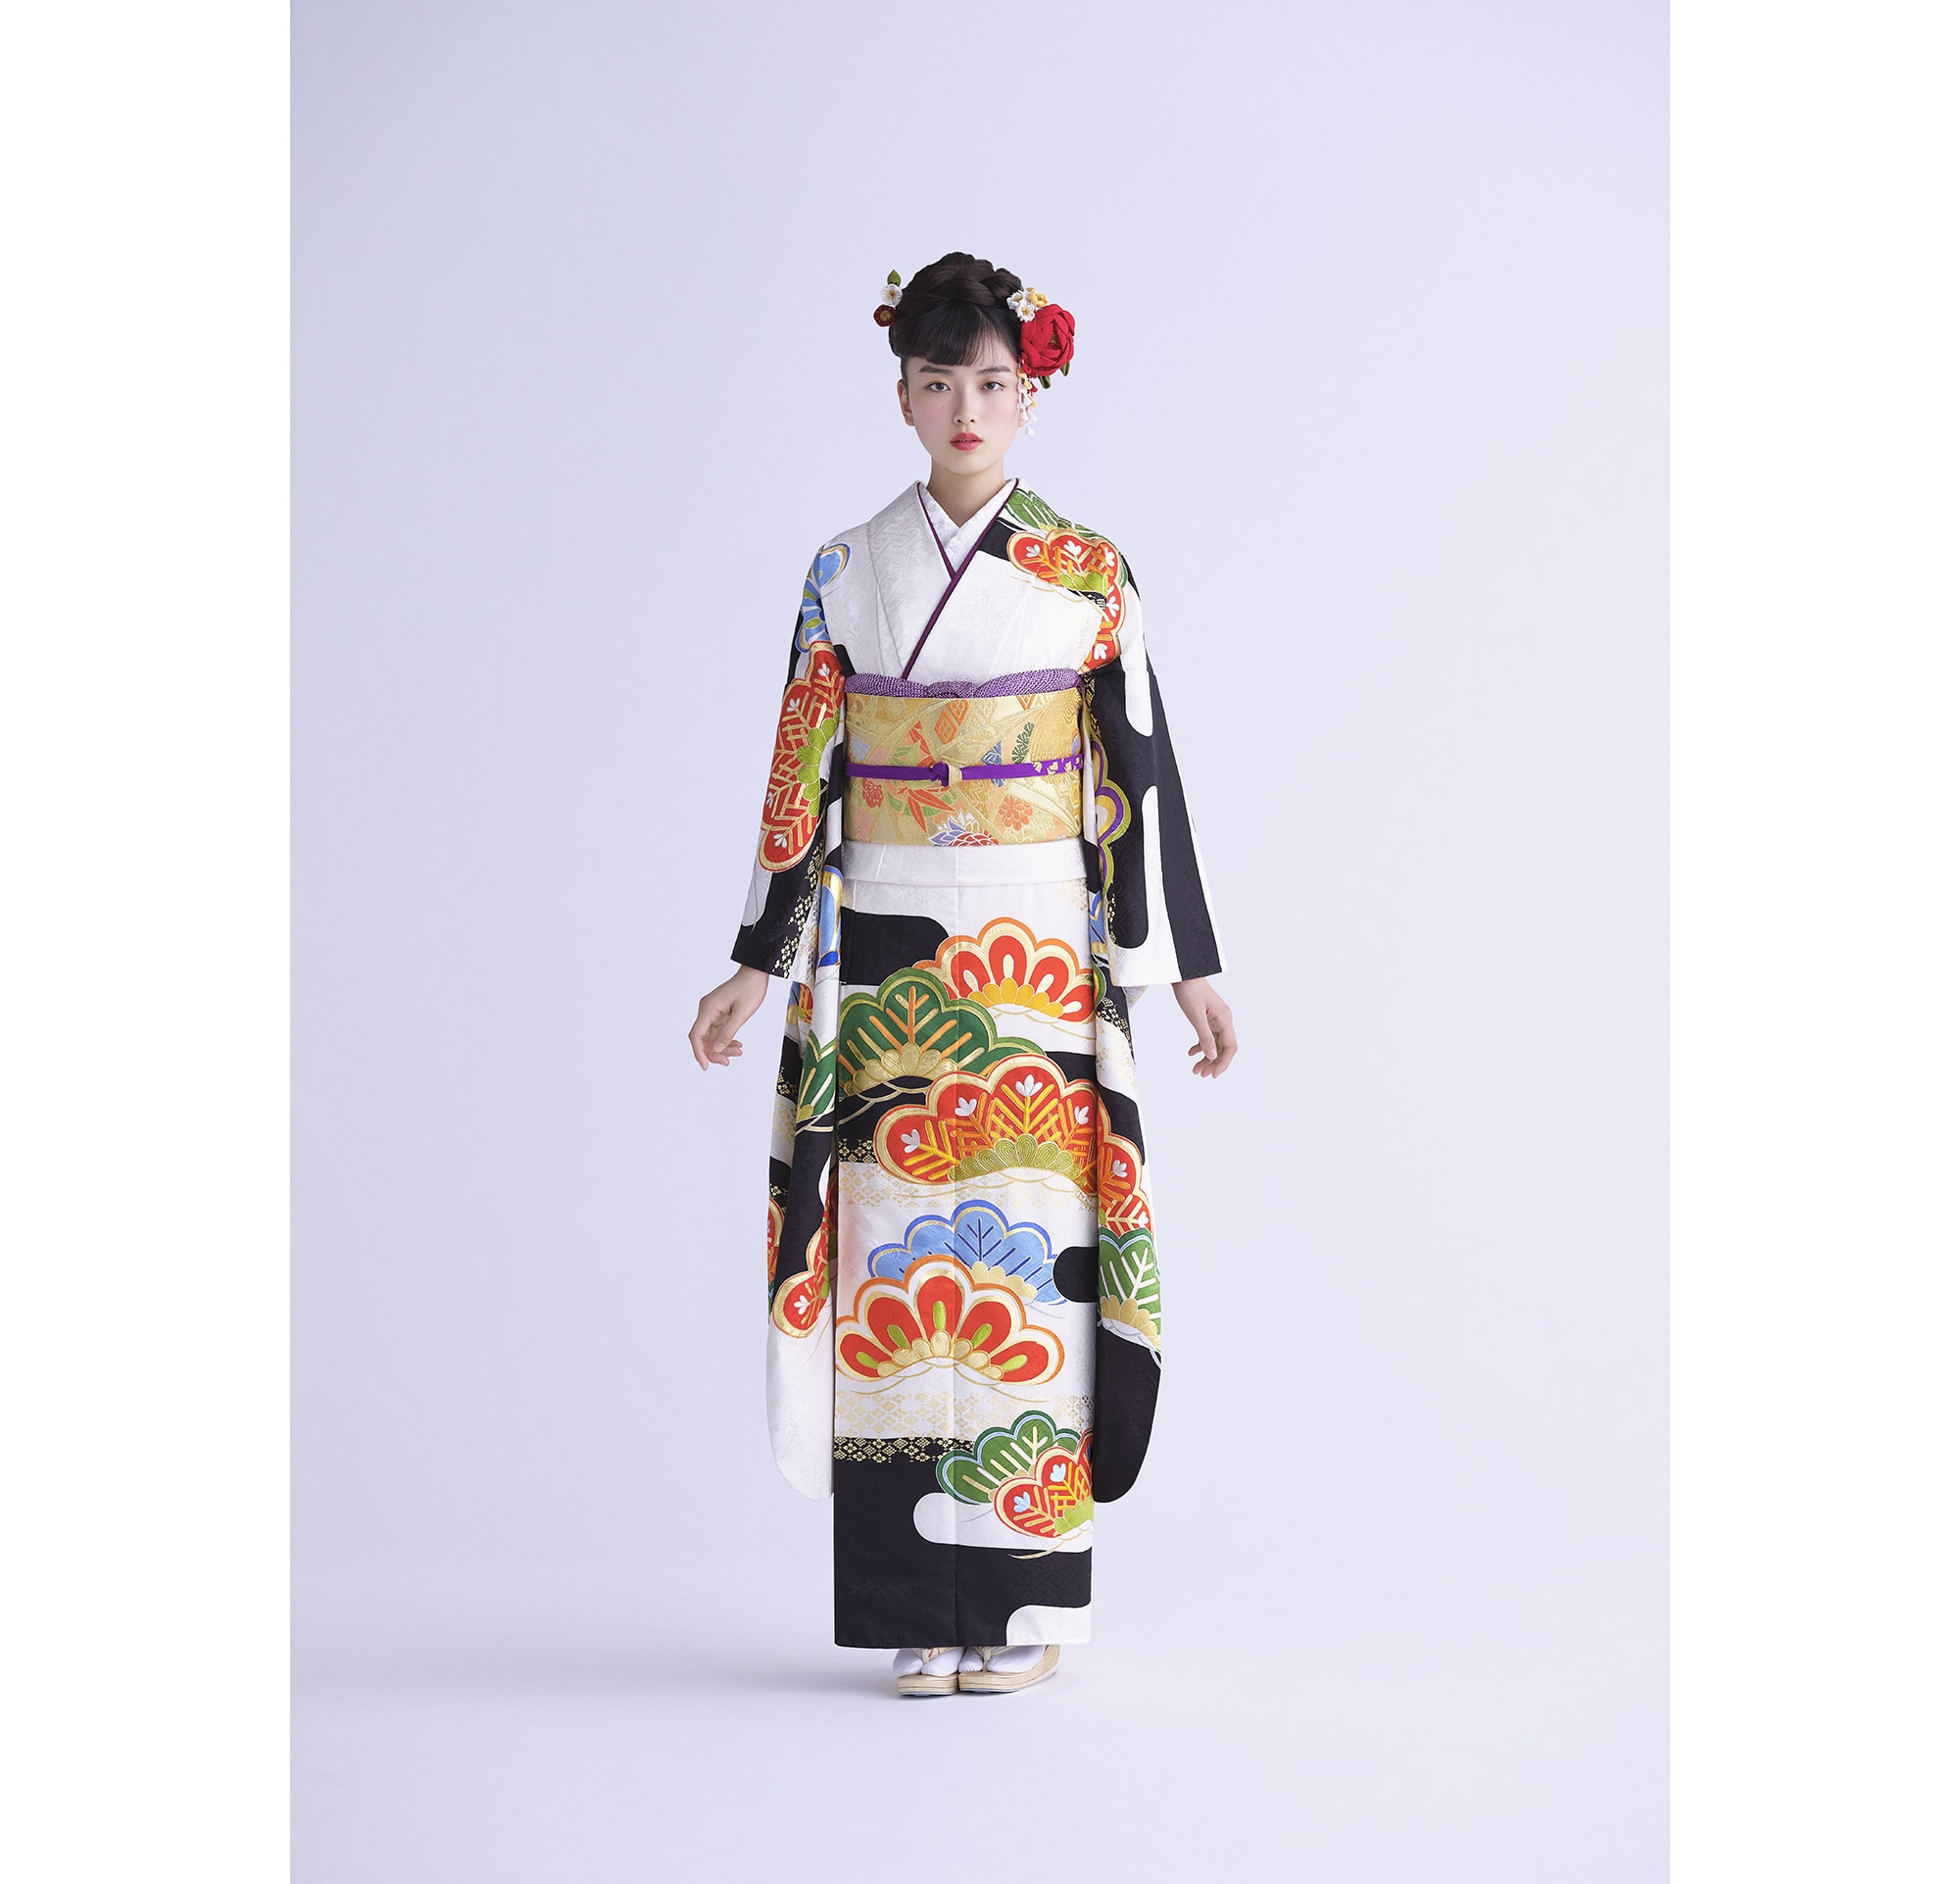 The combination of the fukuro-obi (double-layered sash)'s gold and tabane-noshi (bundled noshi) raises the joy of celebration.